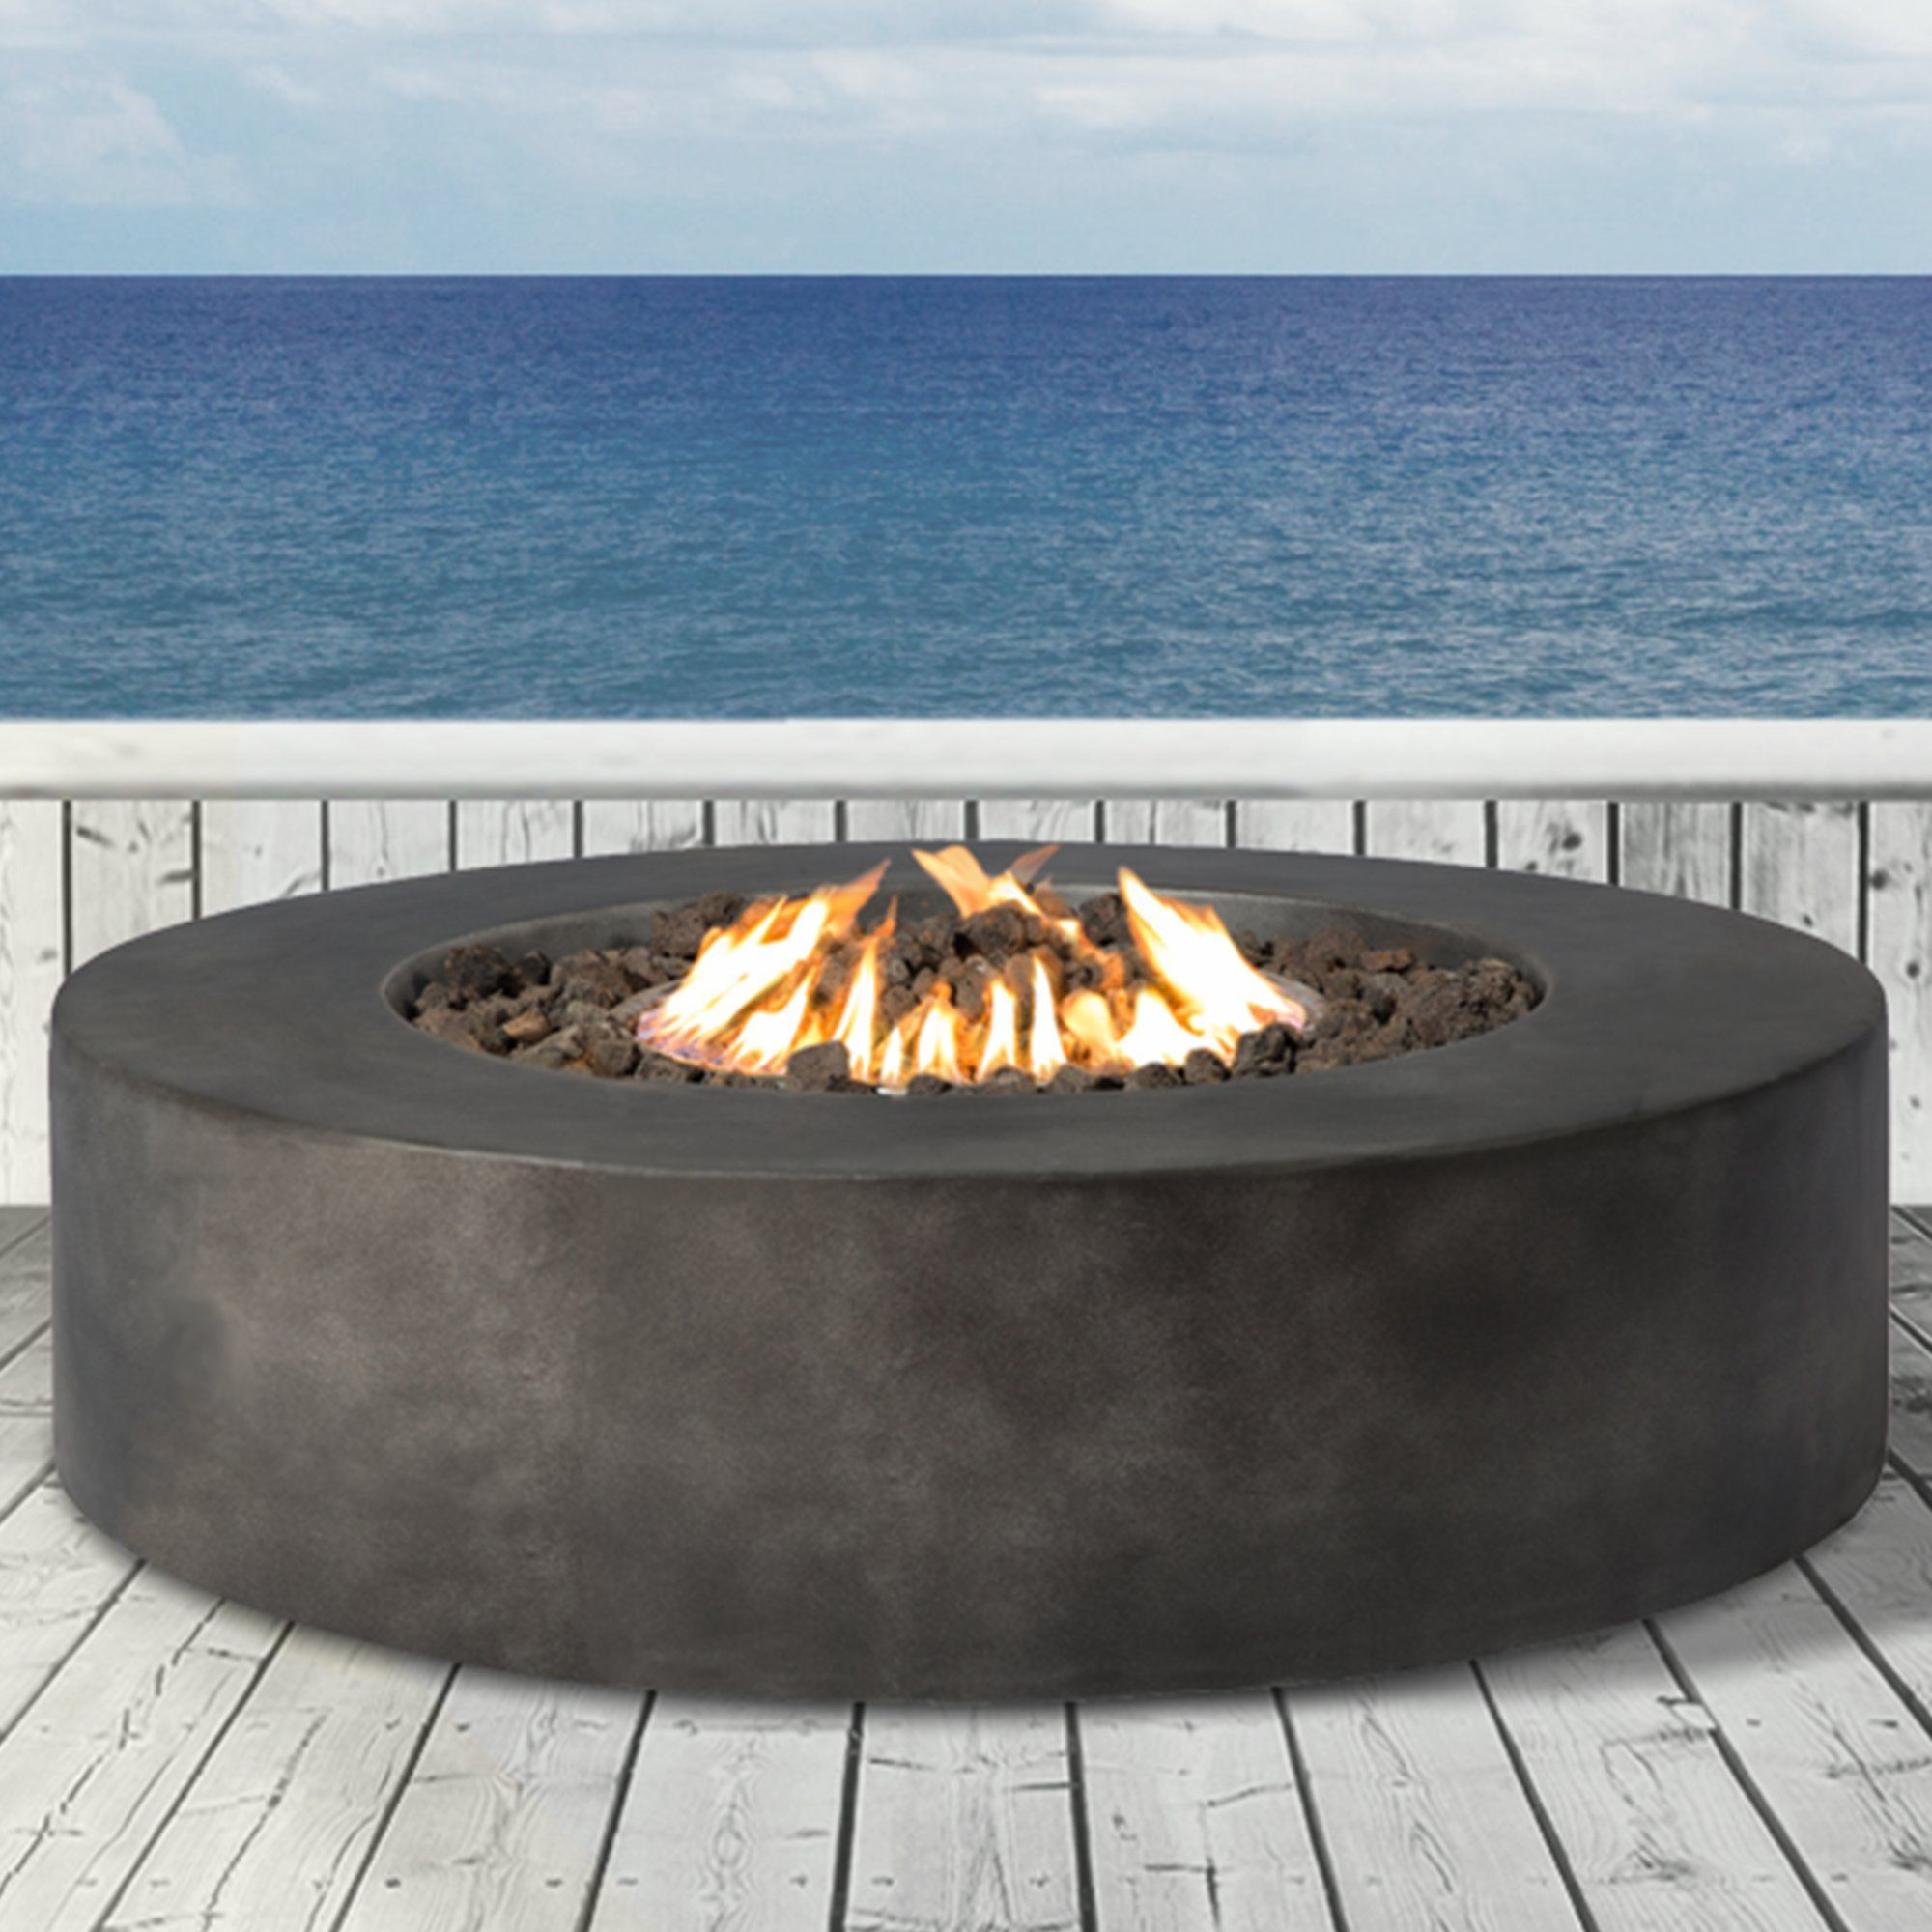 Santiago concrete propane fire pit keep warm in the winter